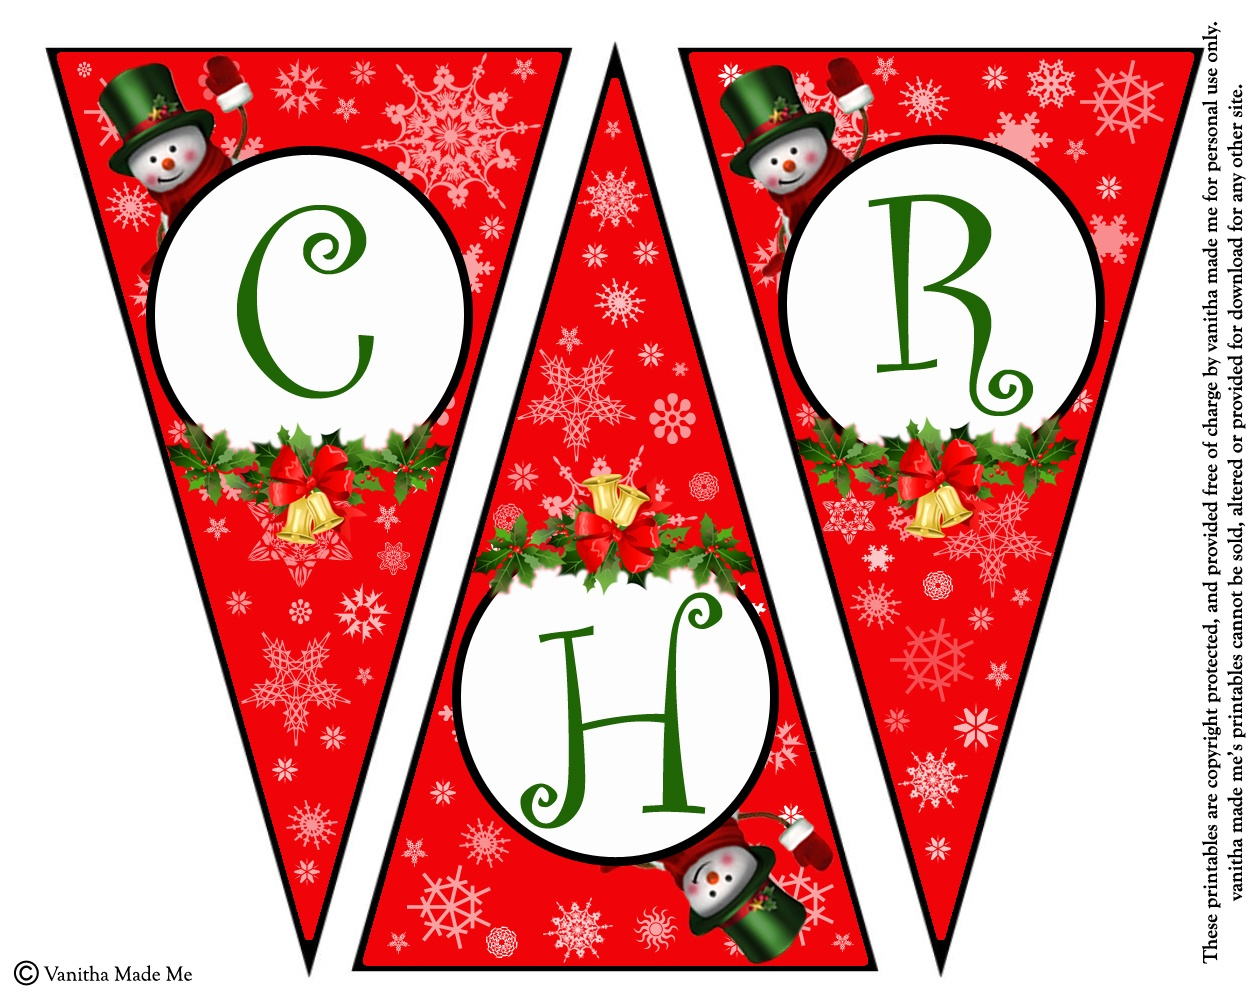 Diy Free Printable Christmas Banner | Vanitha Made Me - Free Printable Christmas Banner